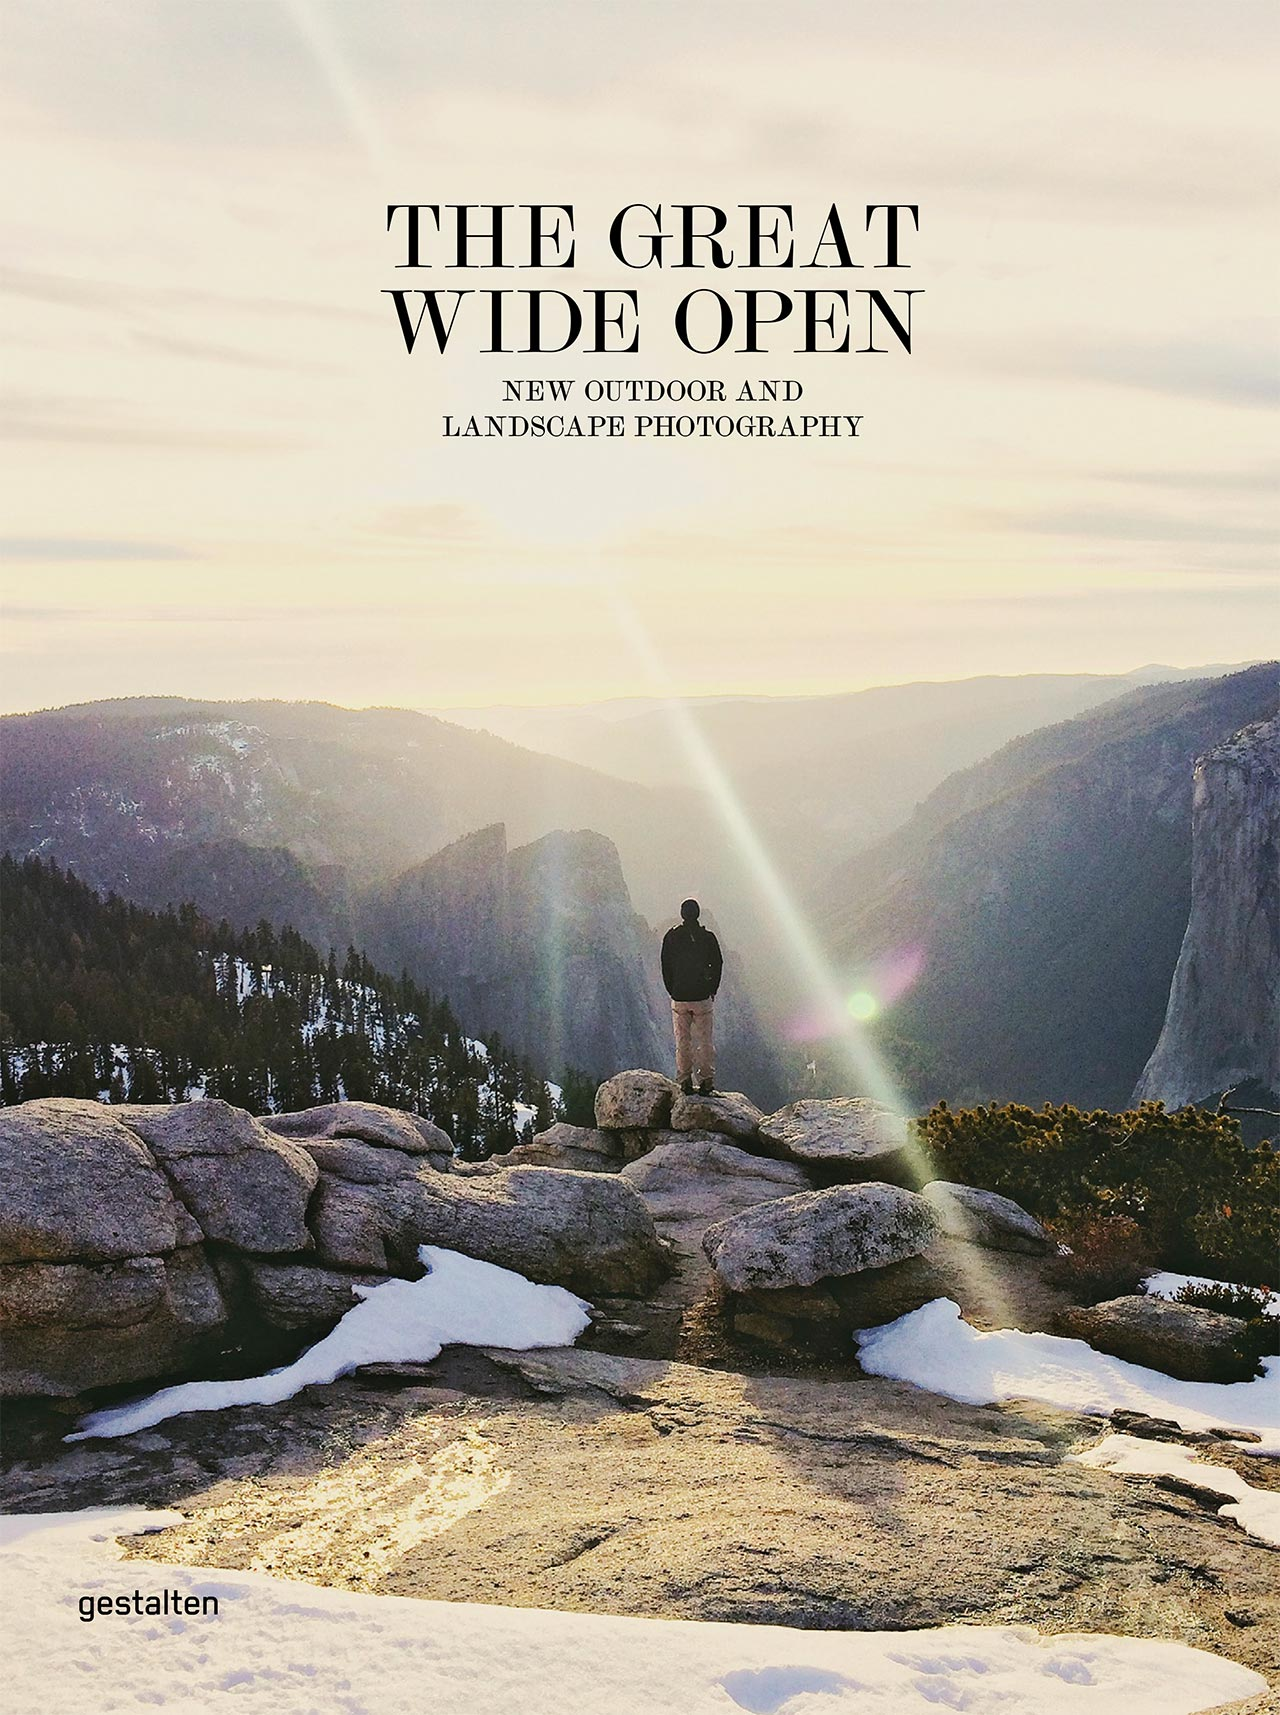 'The Great Wide Open' Book Cover © Gestalten 2015.